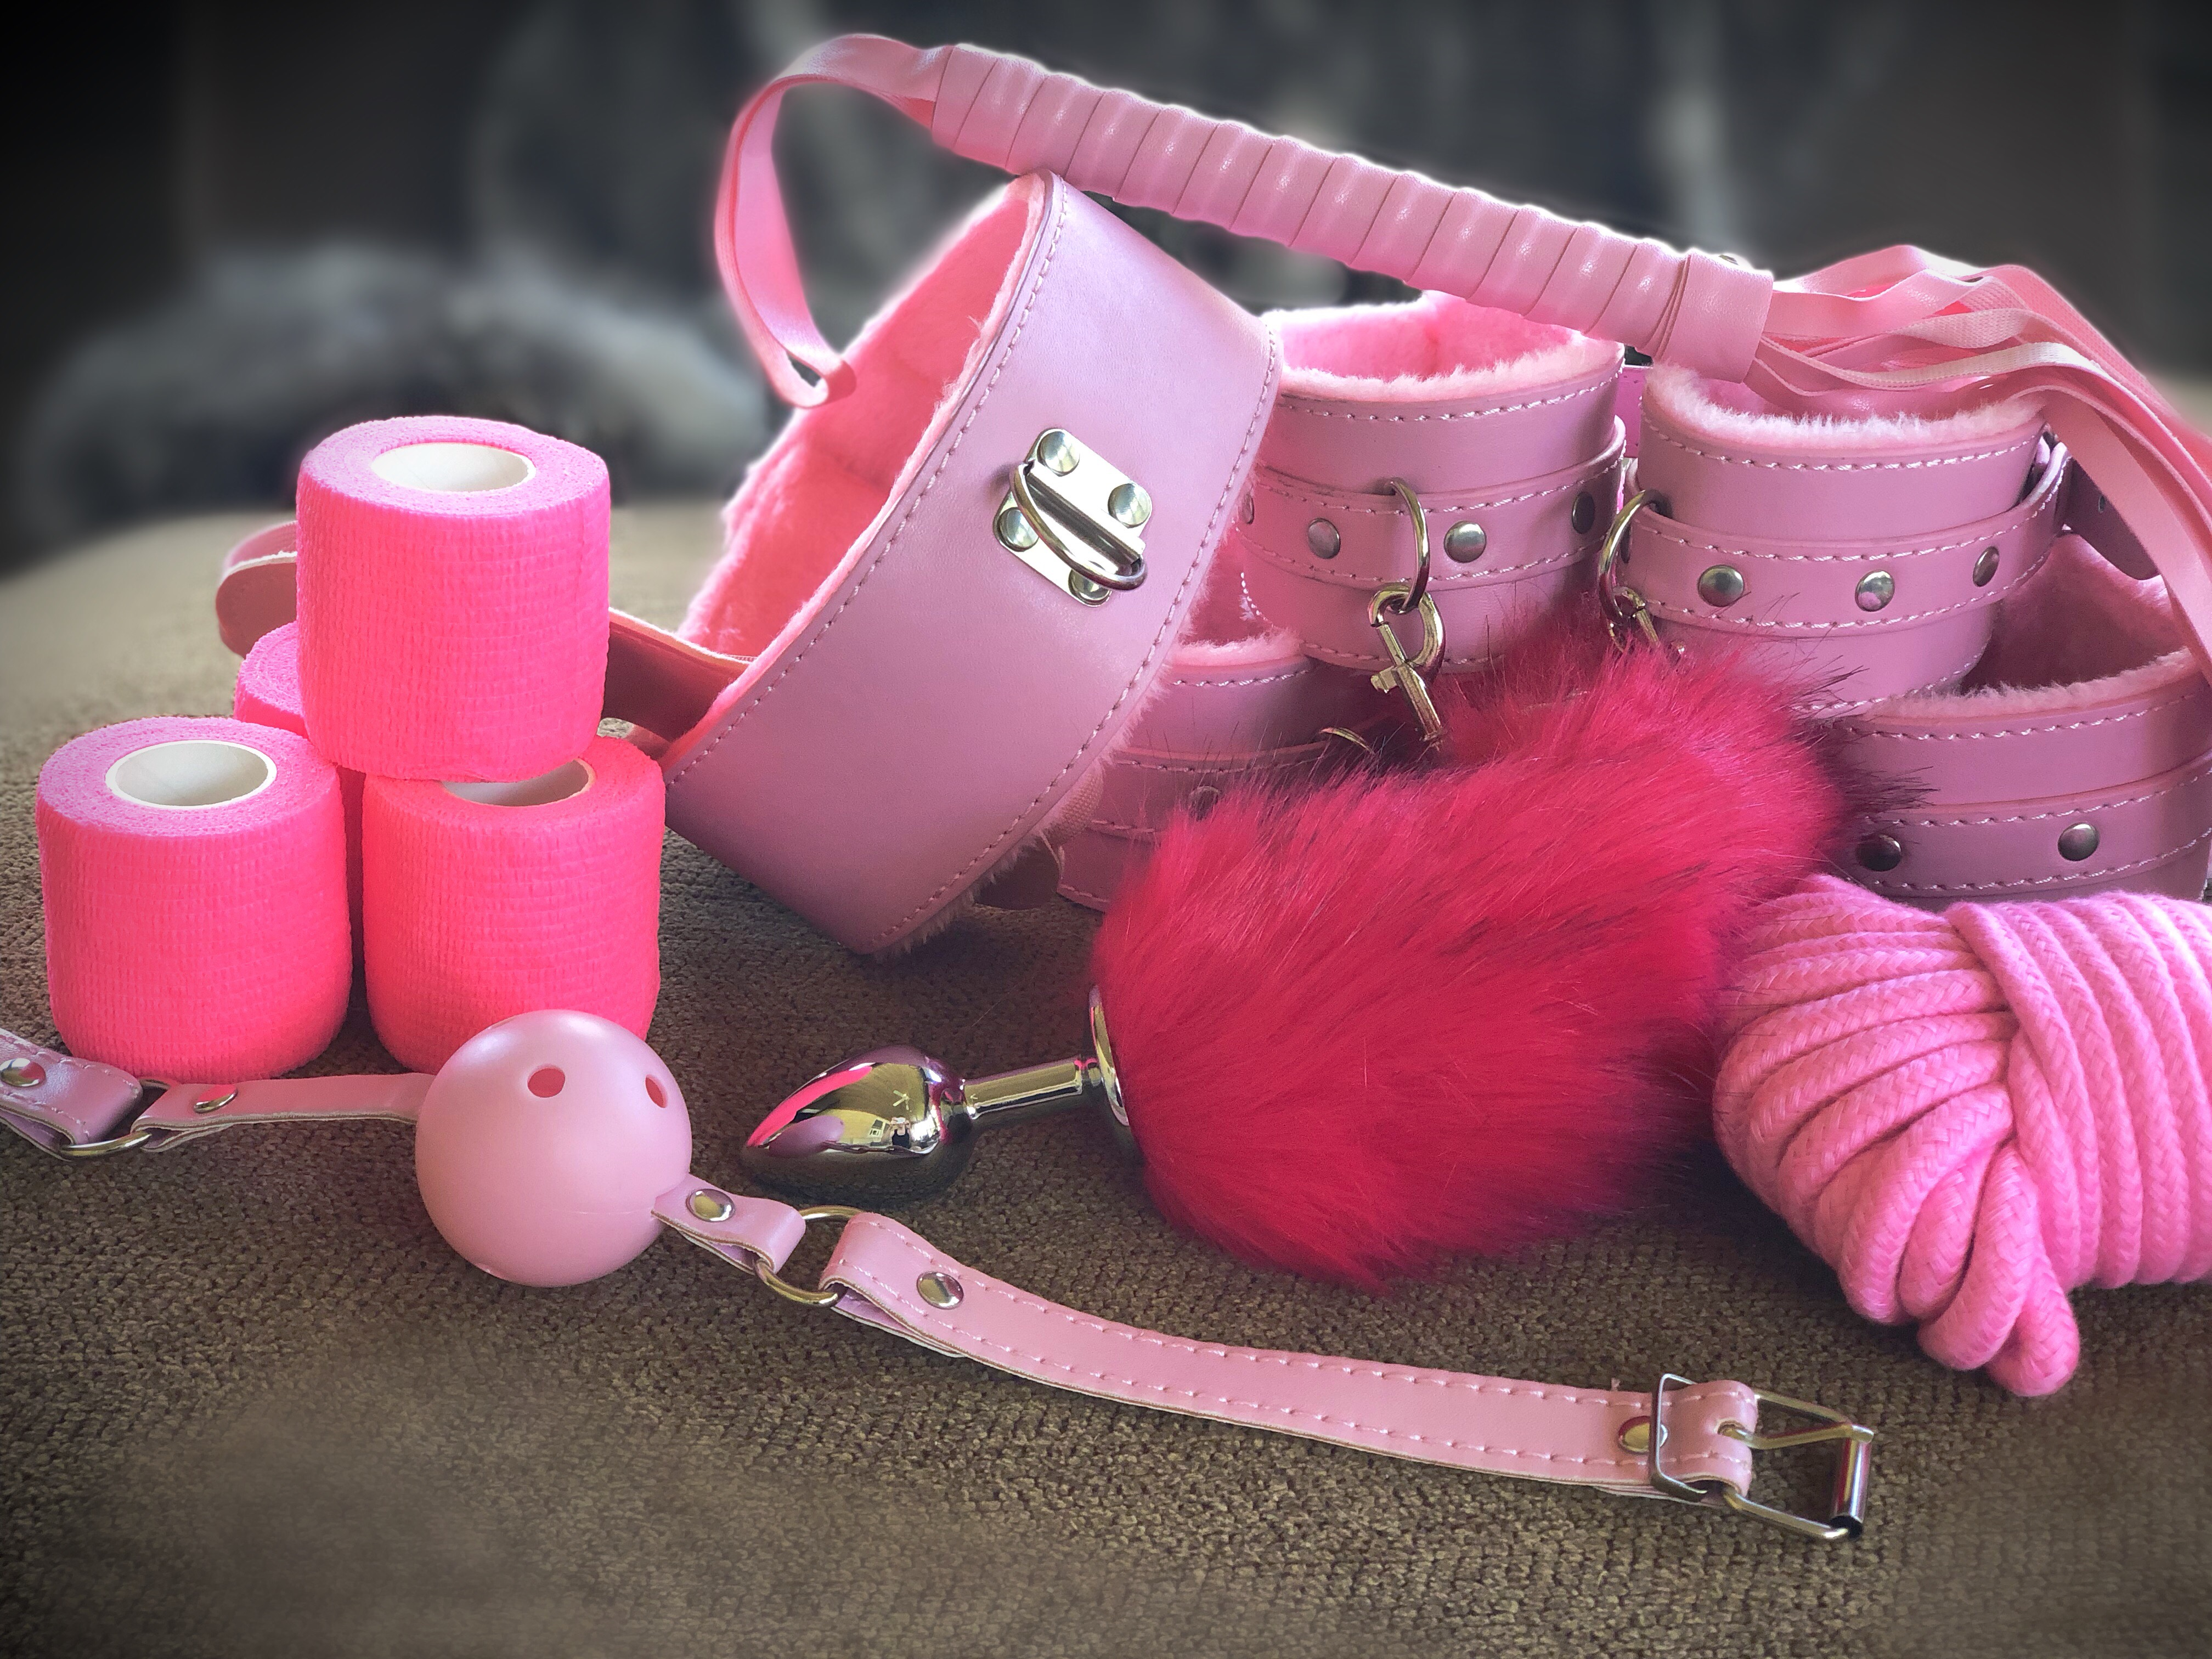 pink, bondage, sissy, slut, sissification, feminization, forced